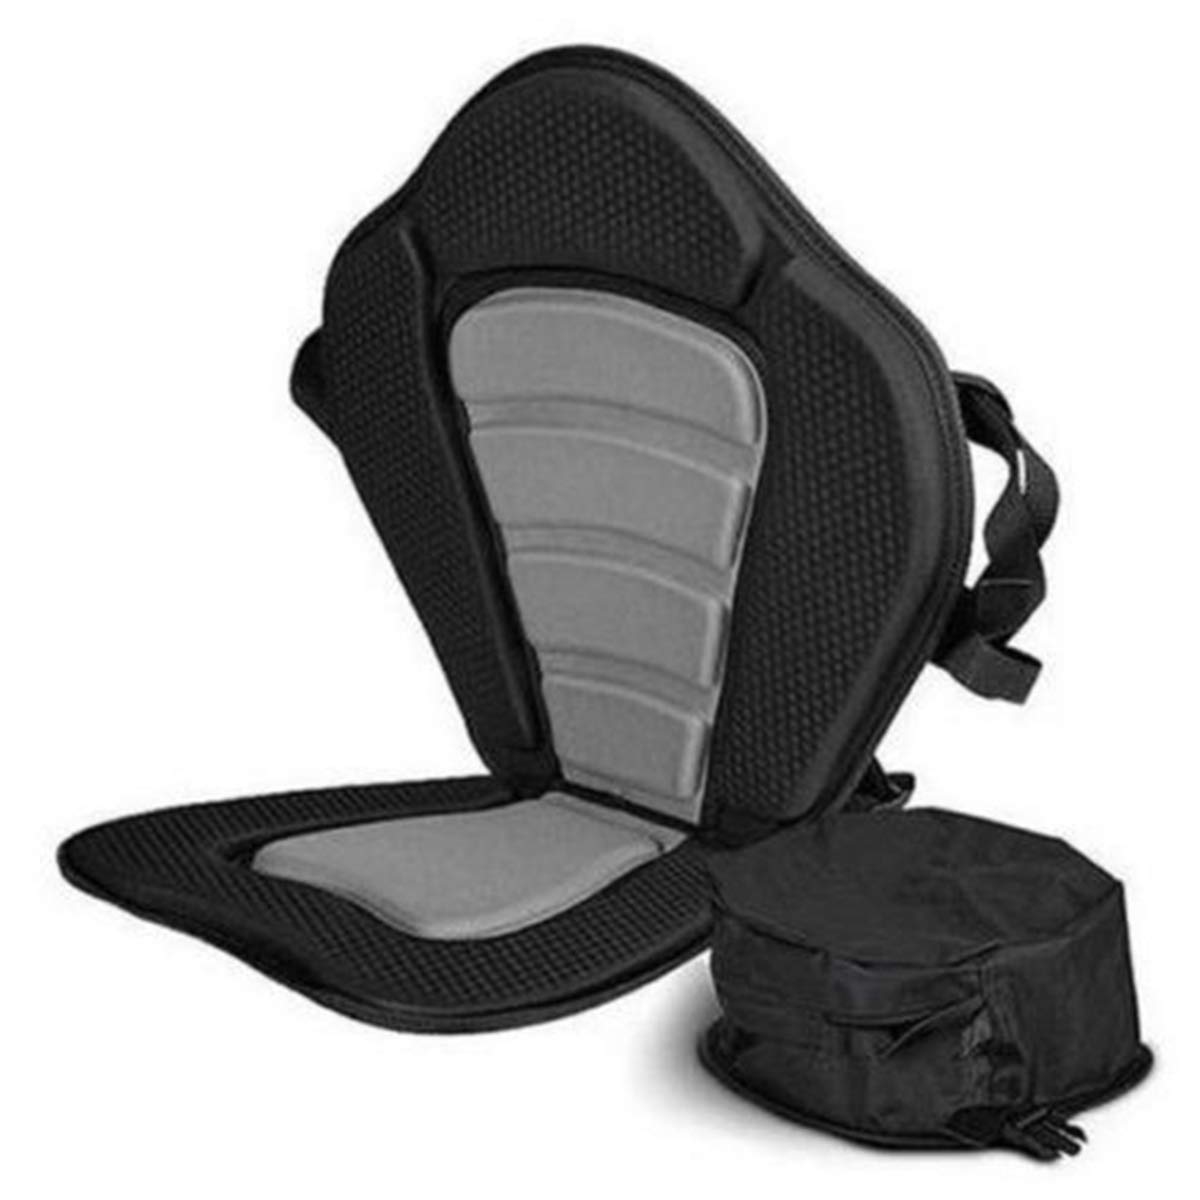 Heavens Tvcz Professional Seat Kayak Backrest Adjustable Deluxe Boat Seat Soft Comfort Deluxe Cushion Anti Skid Padded with Detachable Seat Bag